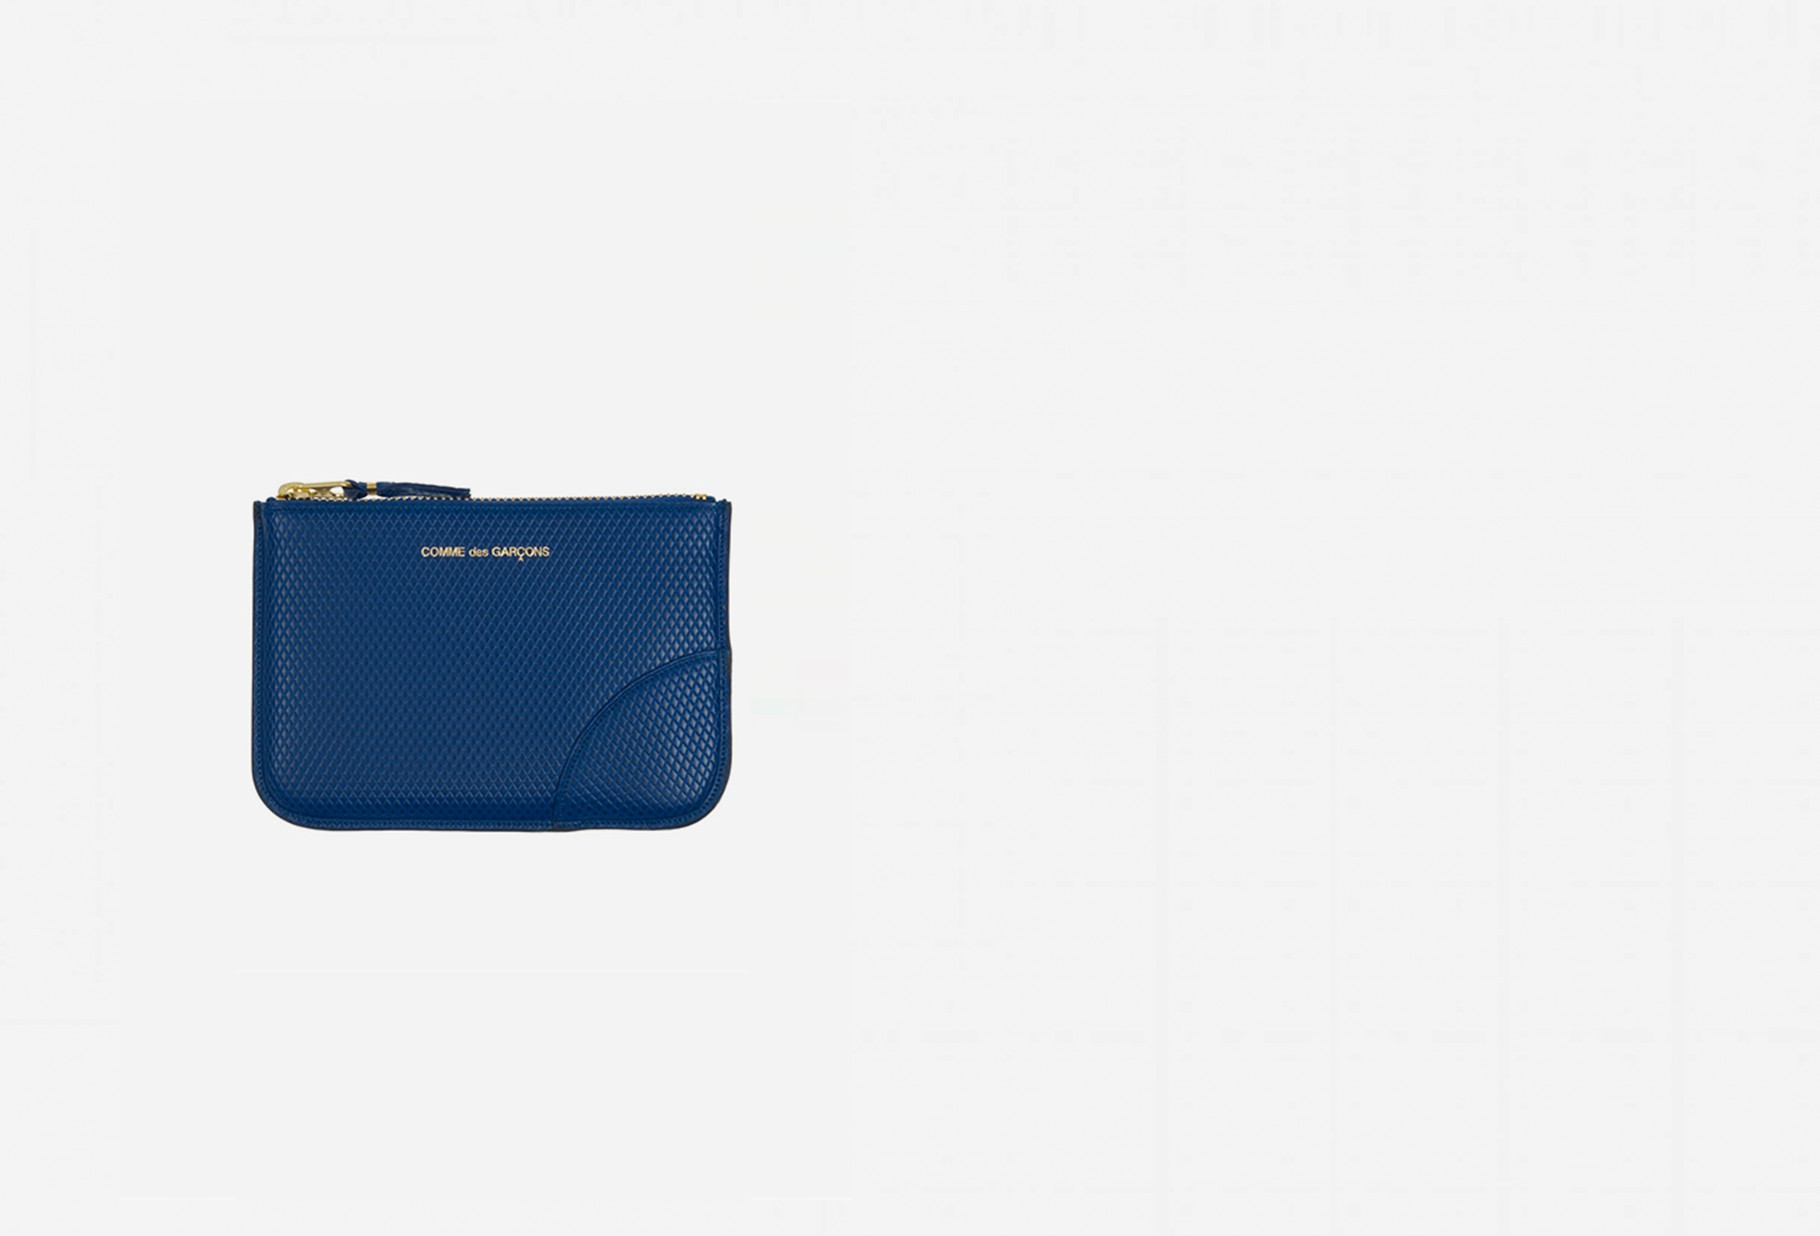 CDG WALLETS FOR WOMAN / Cdg luxury group sa8100lg Blue